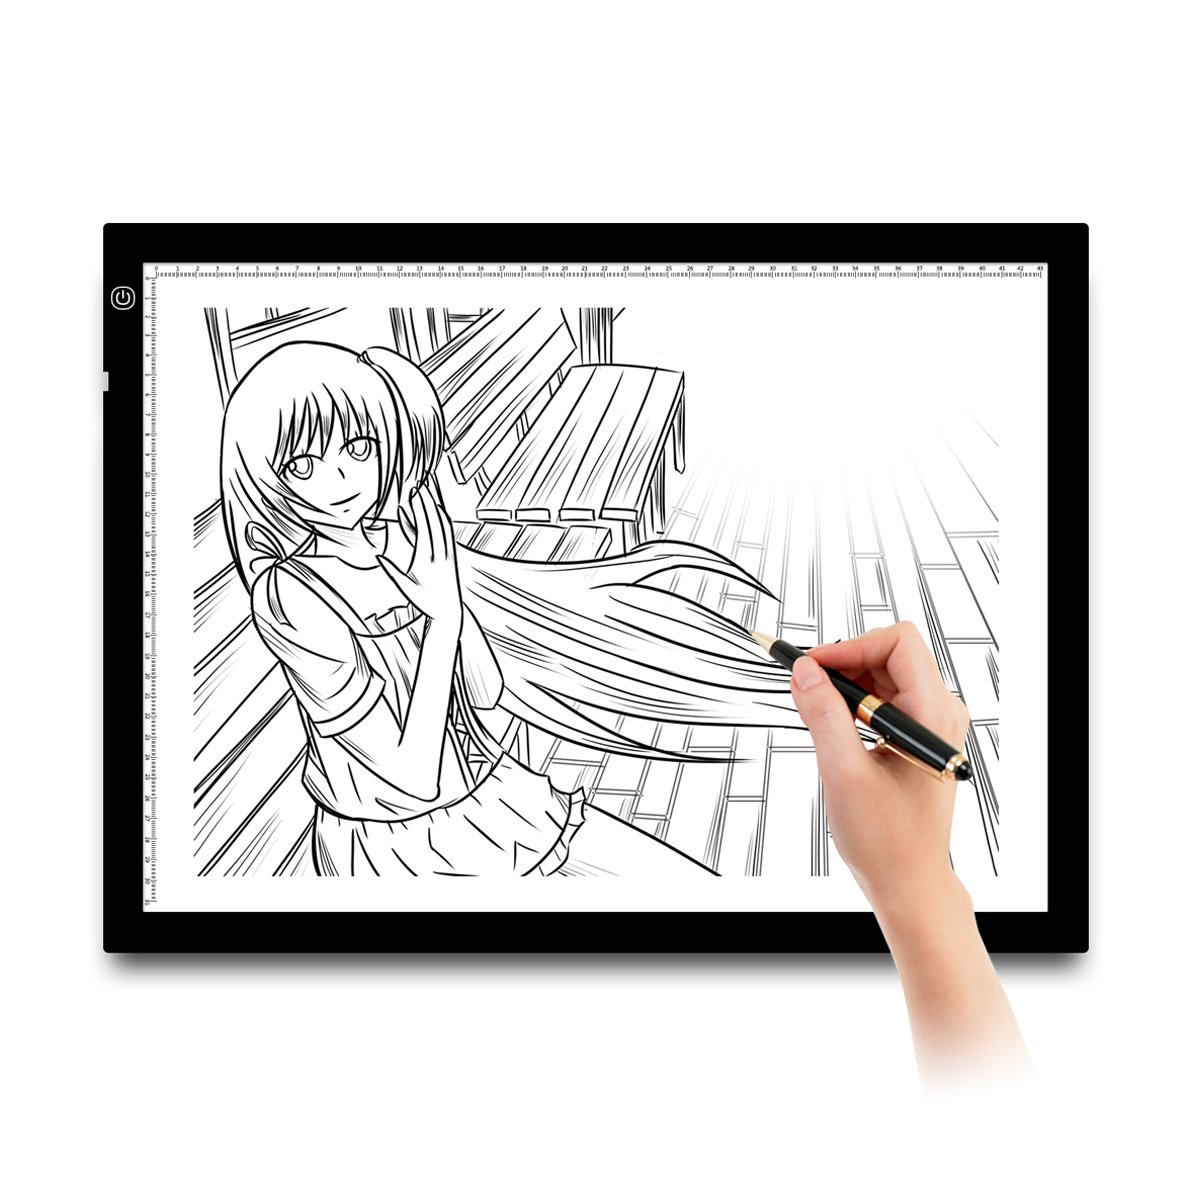 XtremPro A3 LED Tracing Light Pad/Light Box, 21'', 8mm Thin, Dimmable Brightness Artist, Tattoo, Drawing Drafting for Animation, Sketching, Designing, Stenciling, Drawing, Stenciling X-ray Viewing by XtremPro